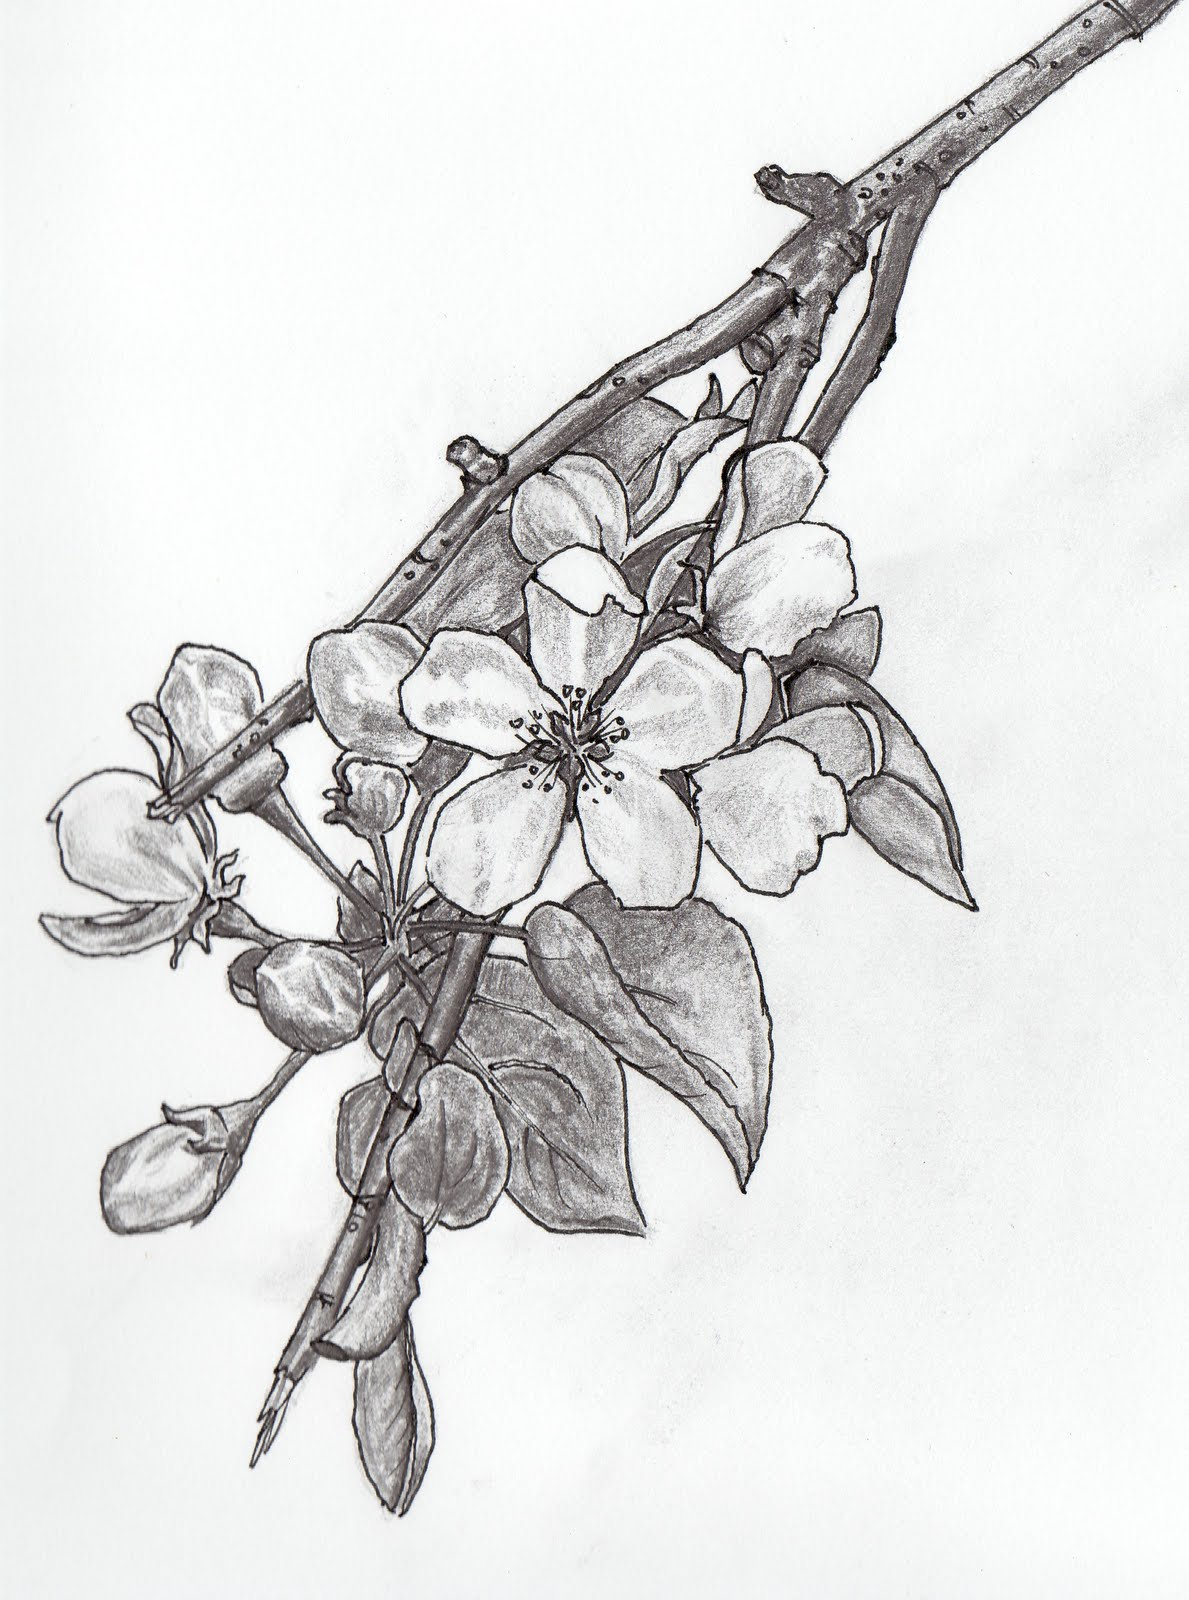 1189x1600 This Is An Apple Blossom, Which Means Promise. I'D Get This